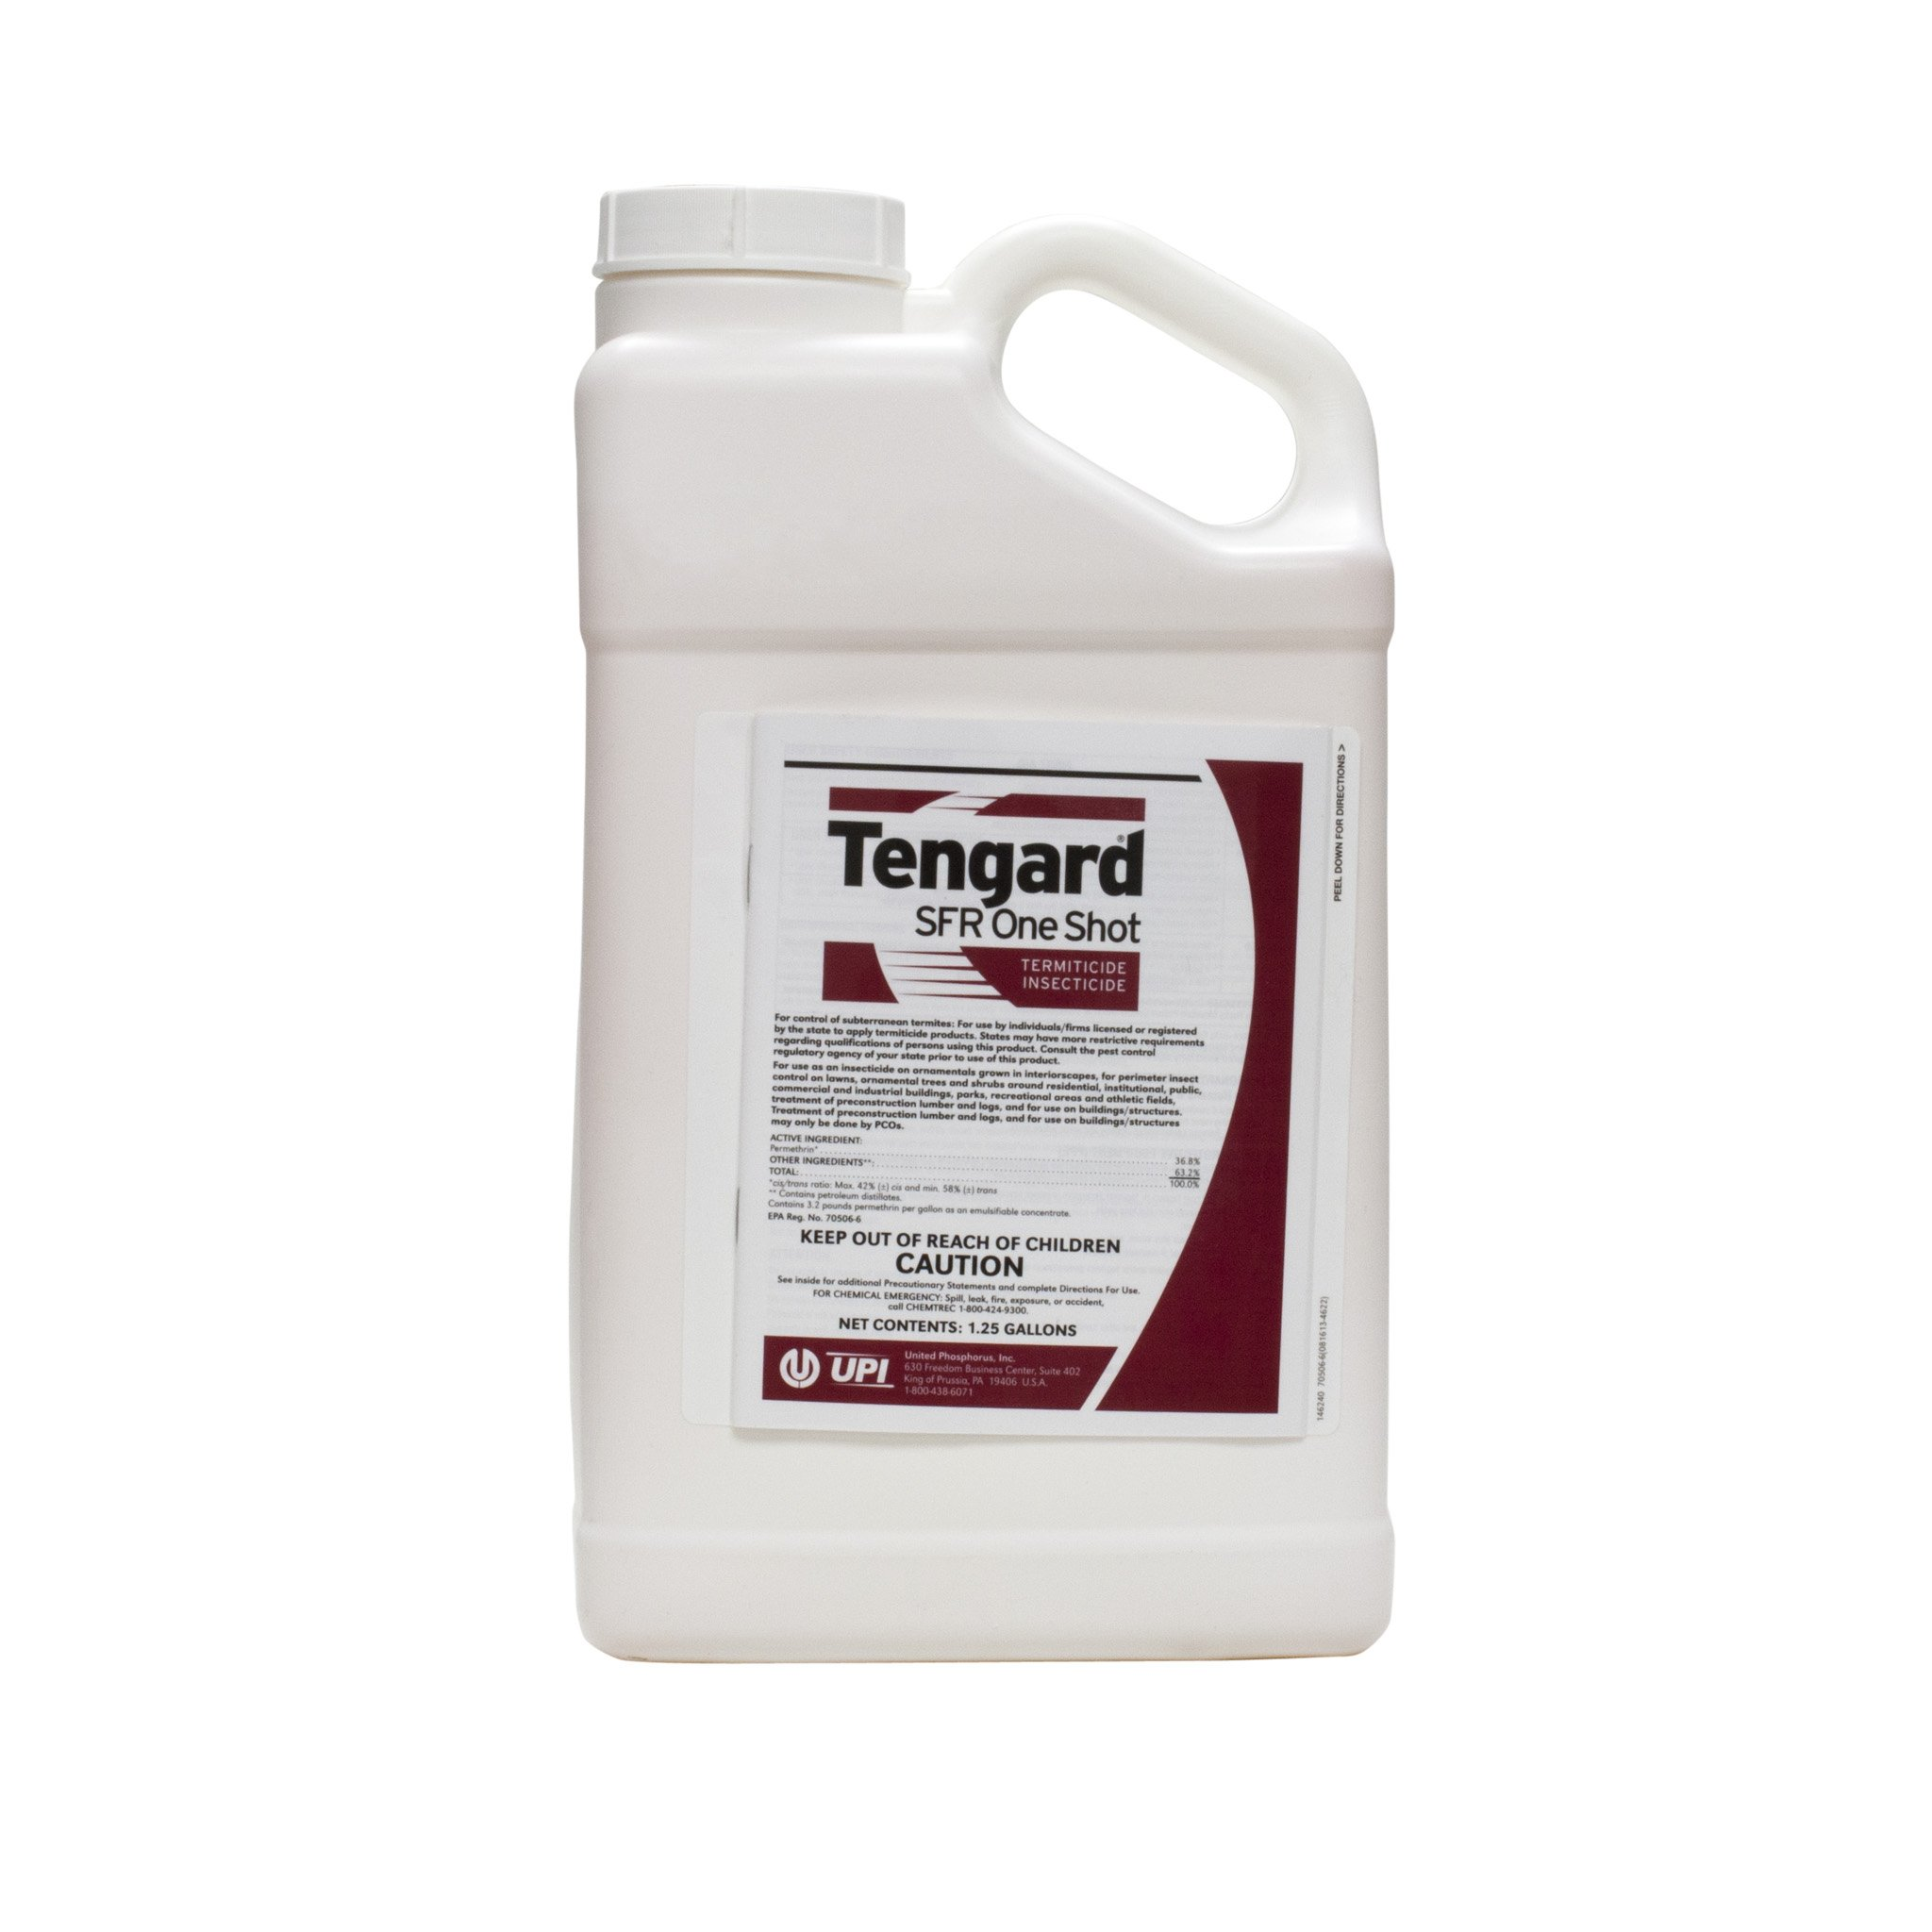 Tengard SFR 36.8 % Permethrin Insecticide / Termiticide 1.25 Gallon ~~ Kill Termites Fleas Ticks Roaches Ants Mole Crickets Ching Bugs and Many More Pests Used By Many Pros!! by United Abrasives (Image #1)